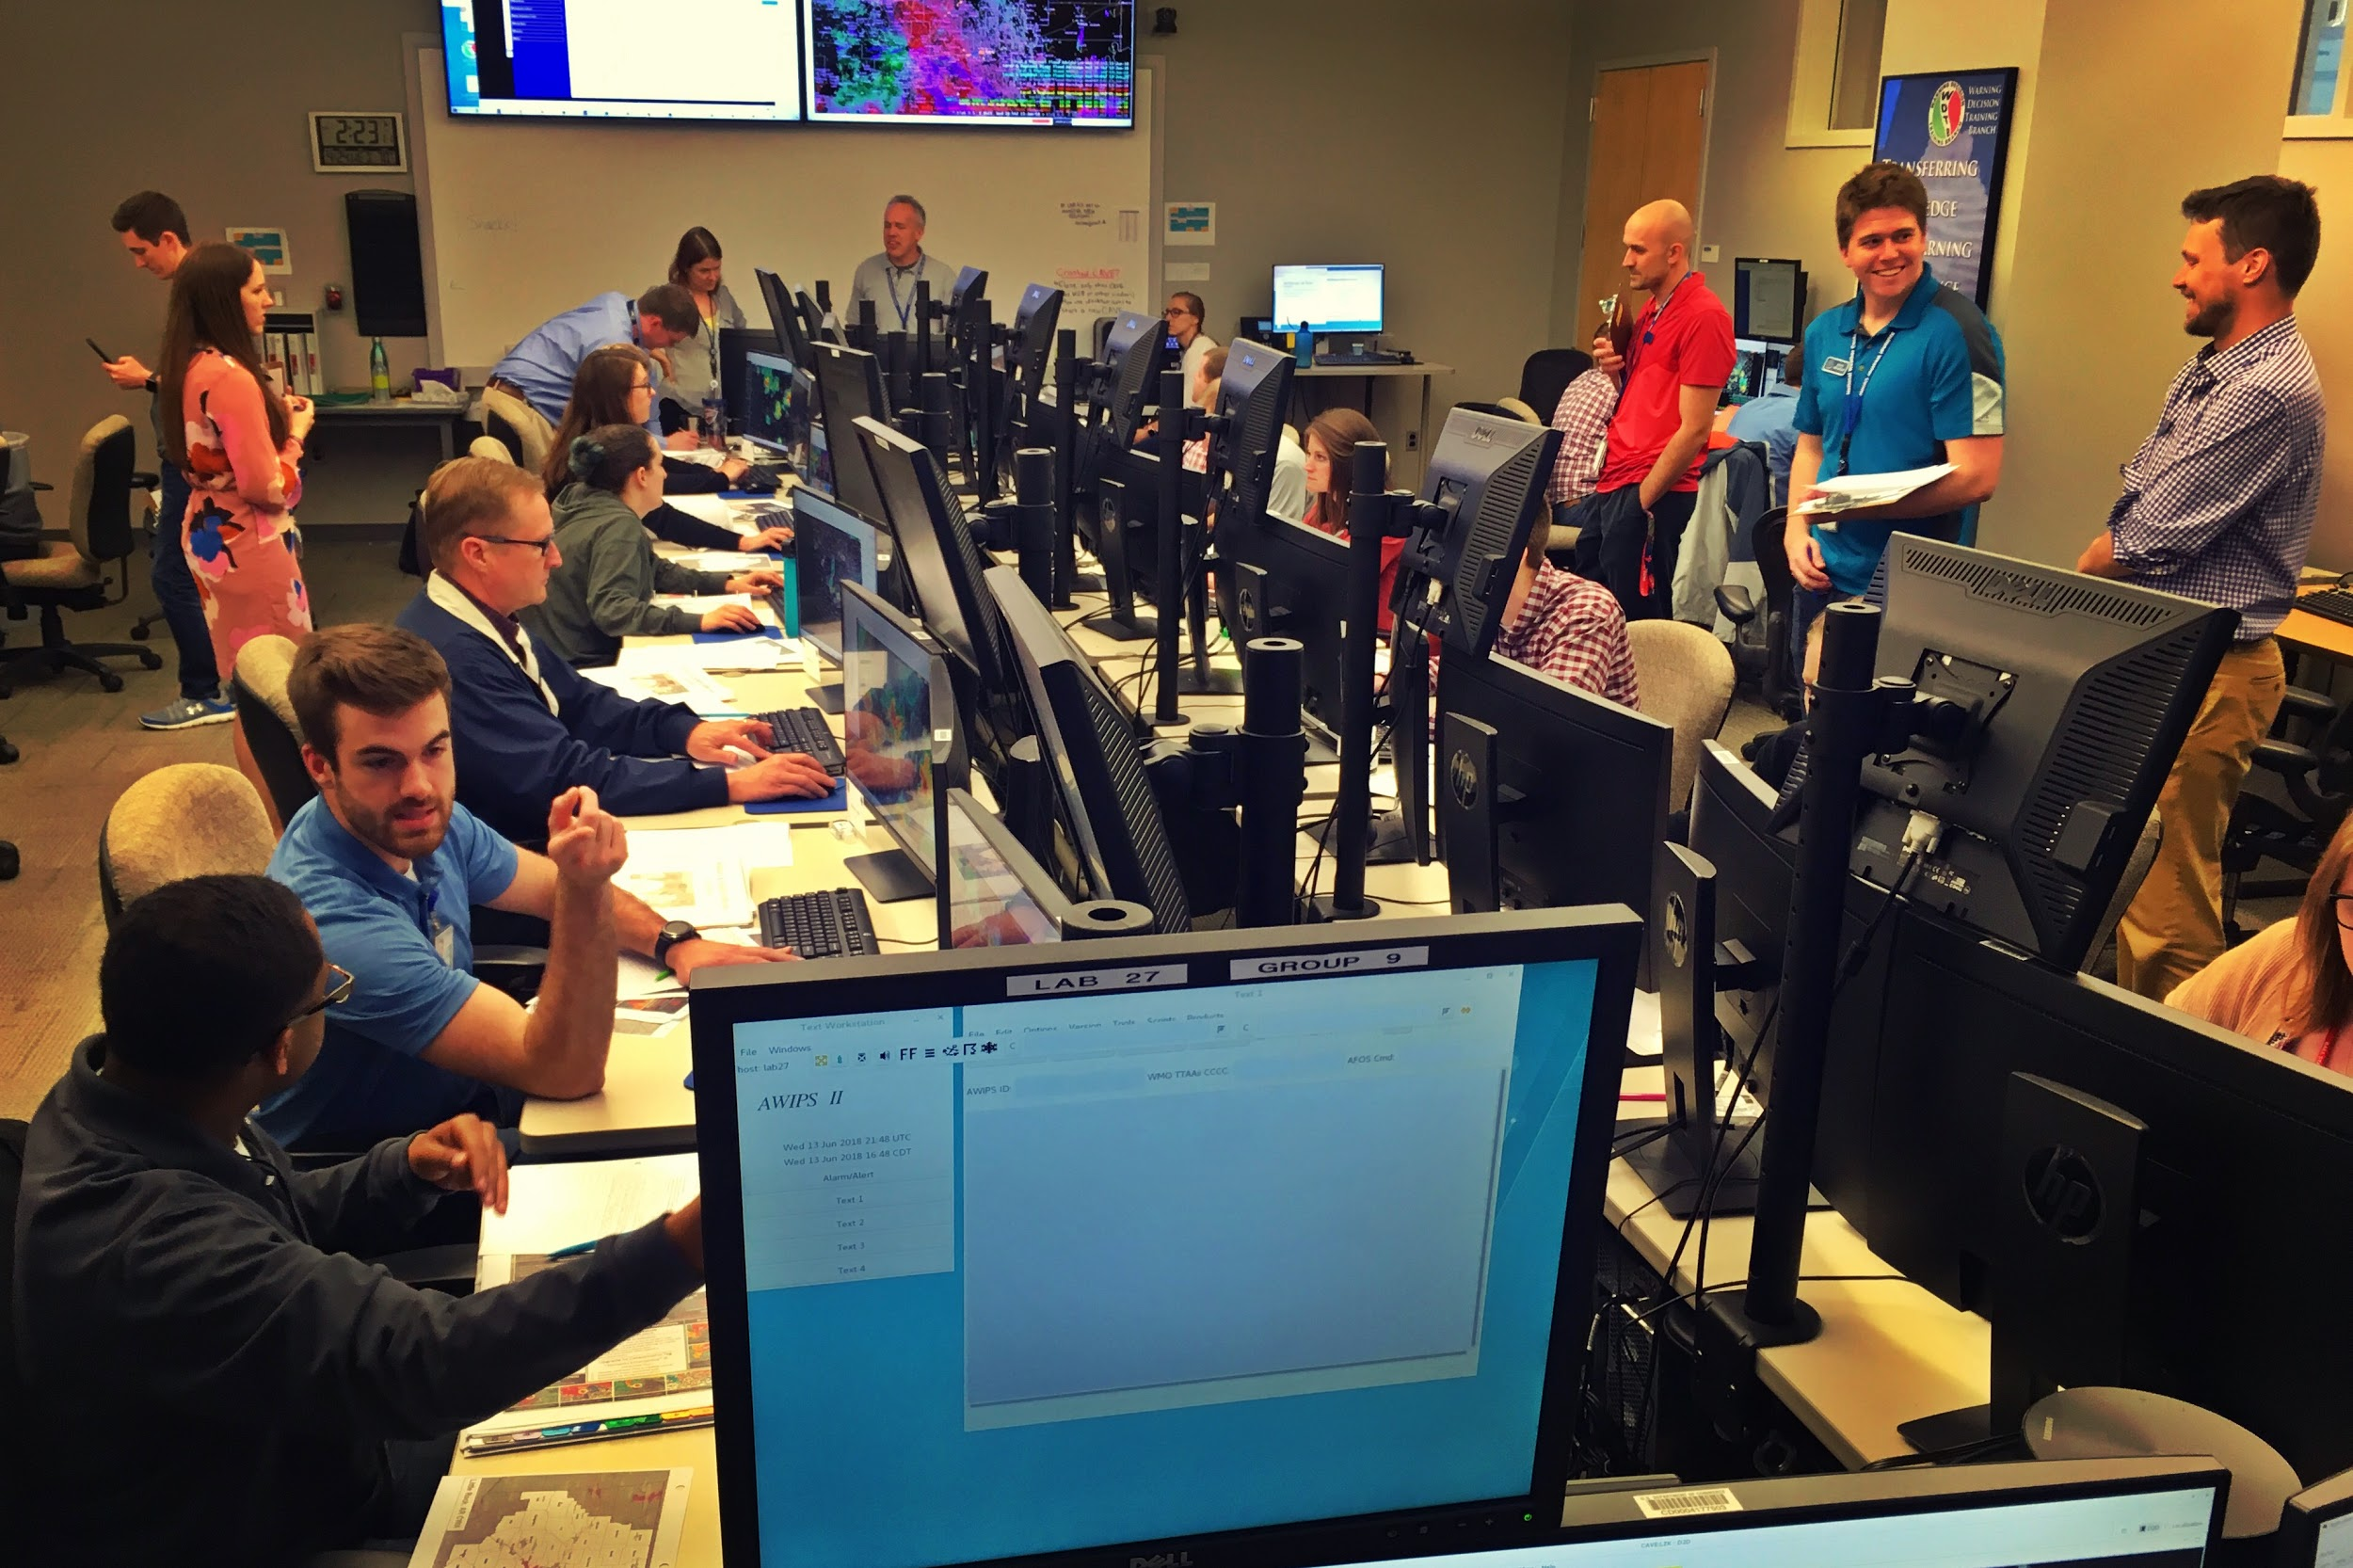 Nws Improves Its Employees Career Paths With Its Gs 5 12 Initiative